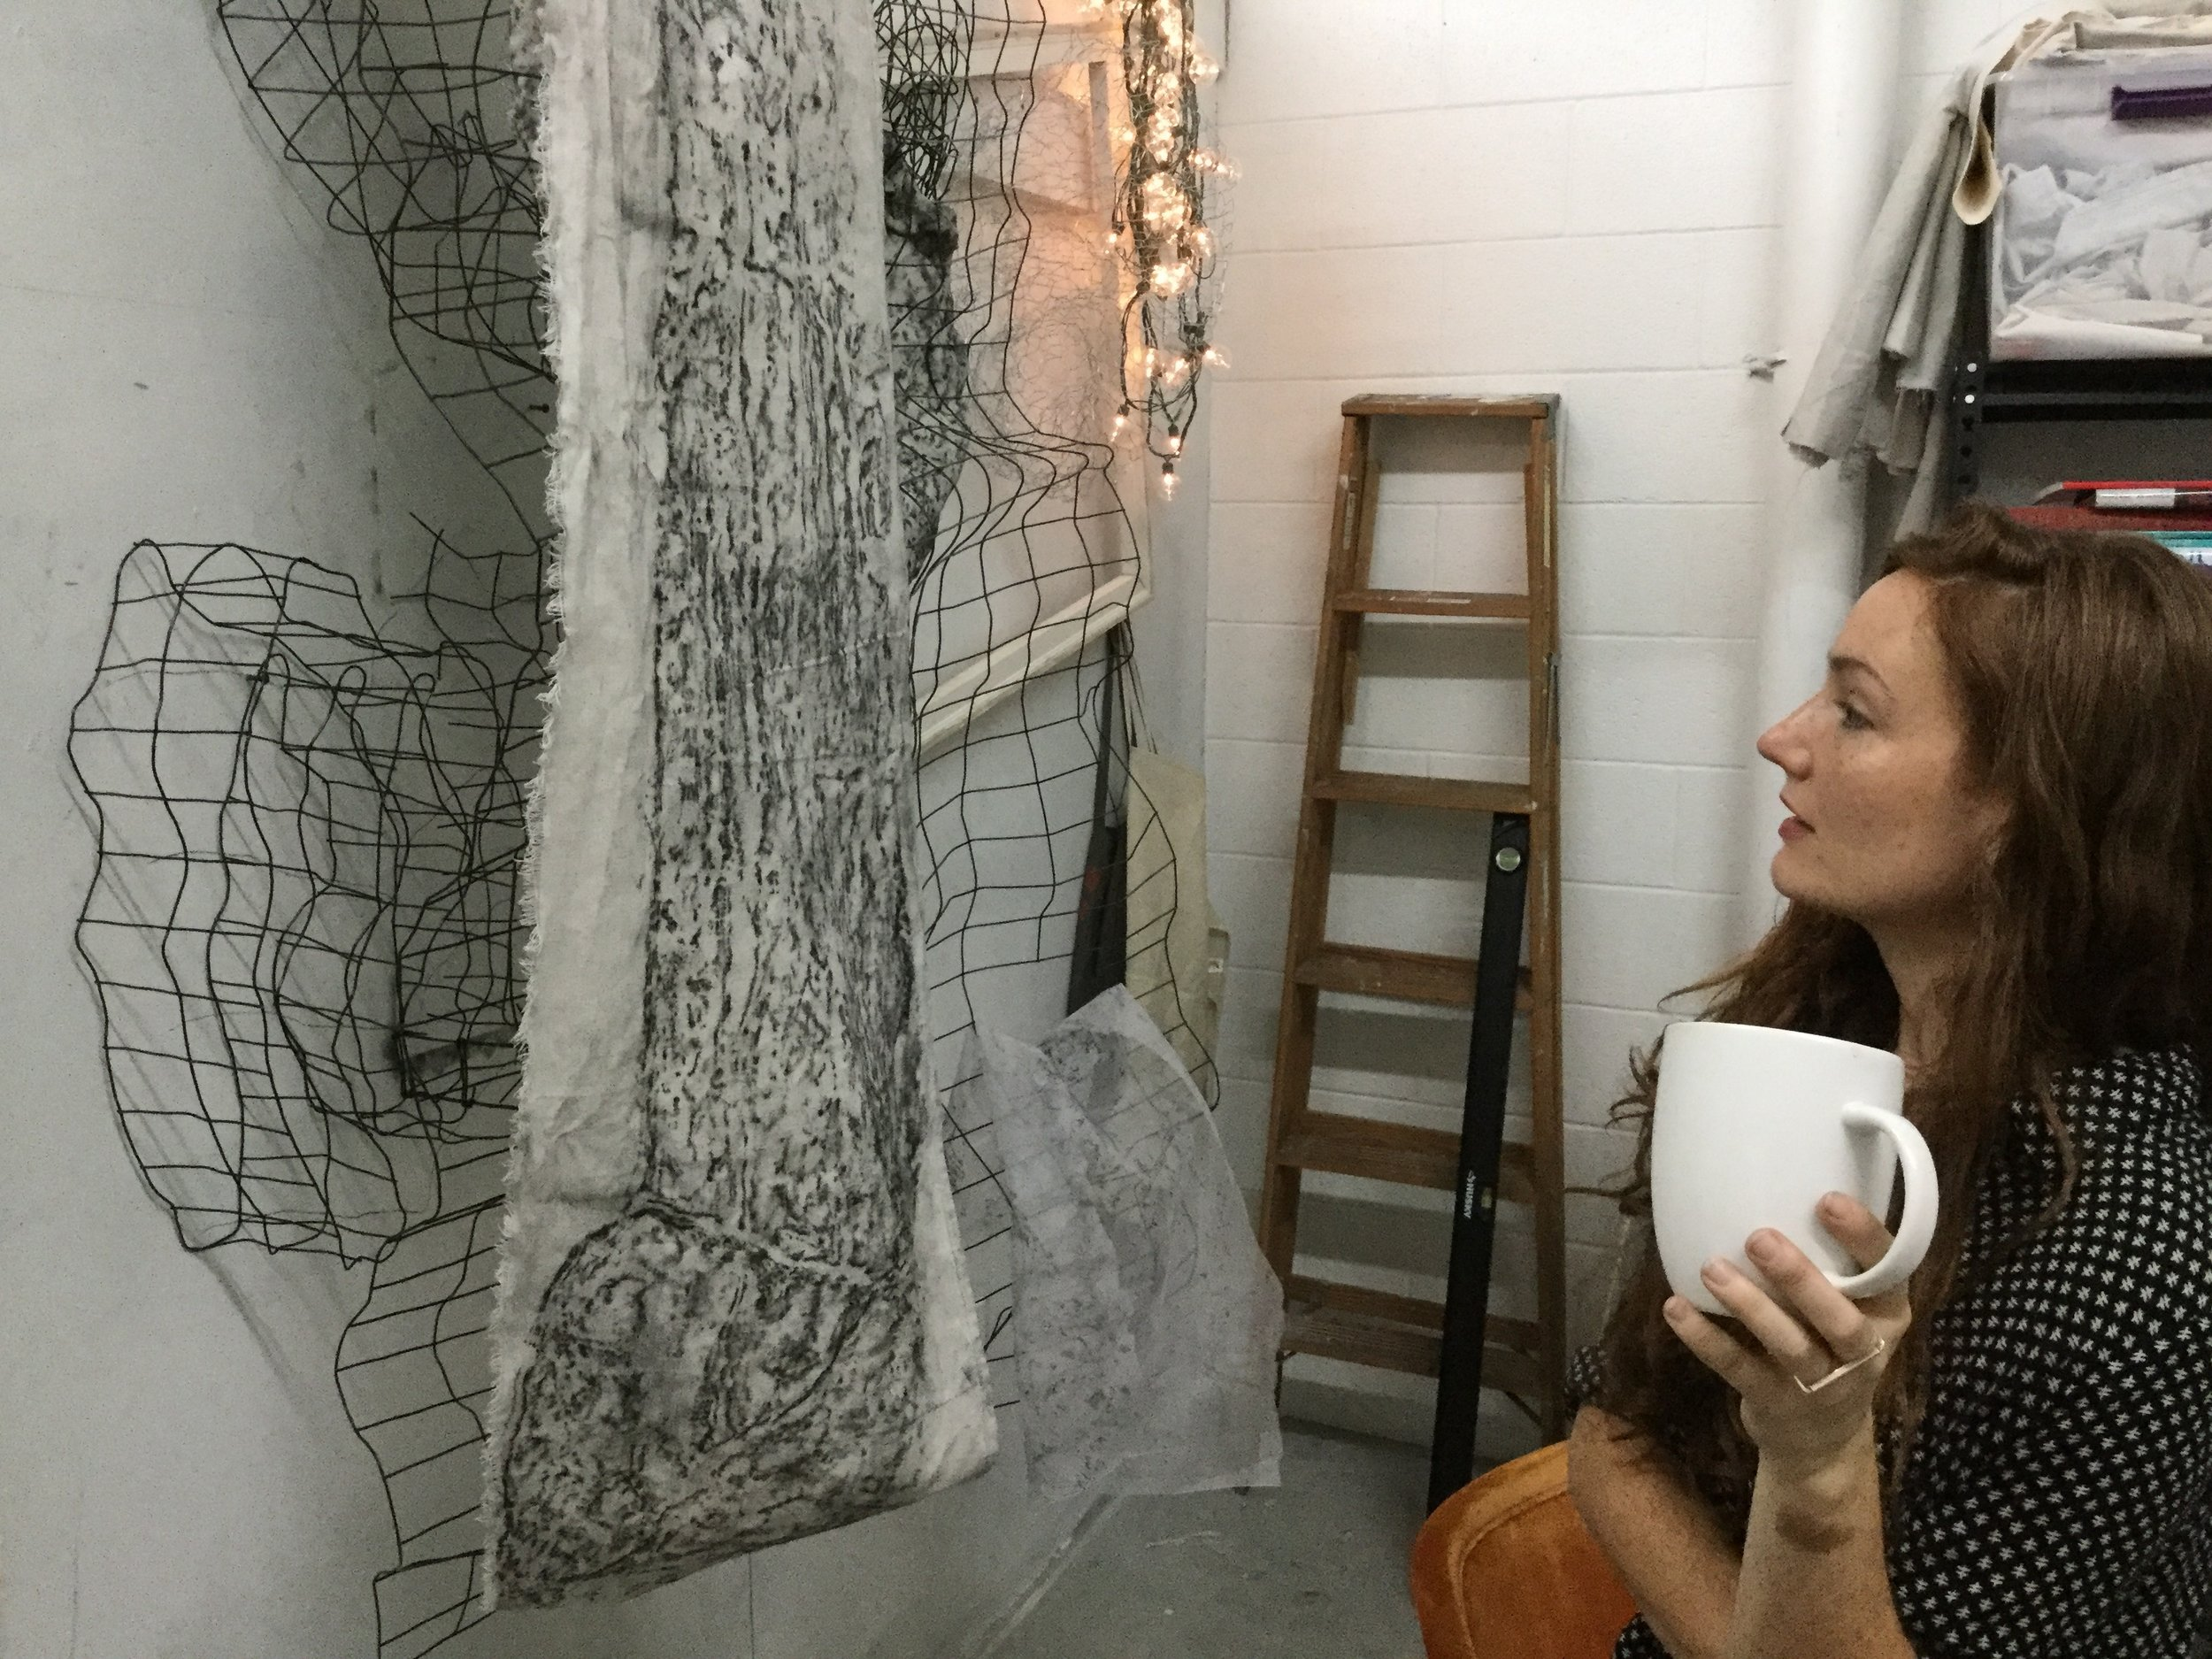 Studio Conversation with Painter Erin Murphy - Jonathan Lisenby sits down with Nashville-based artist Erin Murphy in her studio at Ground Floor Gallery + Studios. They talk about growing up in a creativity-quashing environment, rubbing gravestones, and becoming Xena: Warrior Princess, among other things.